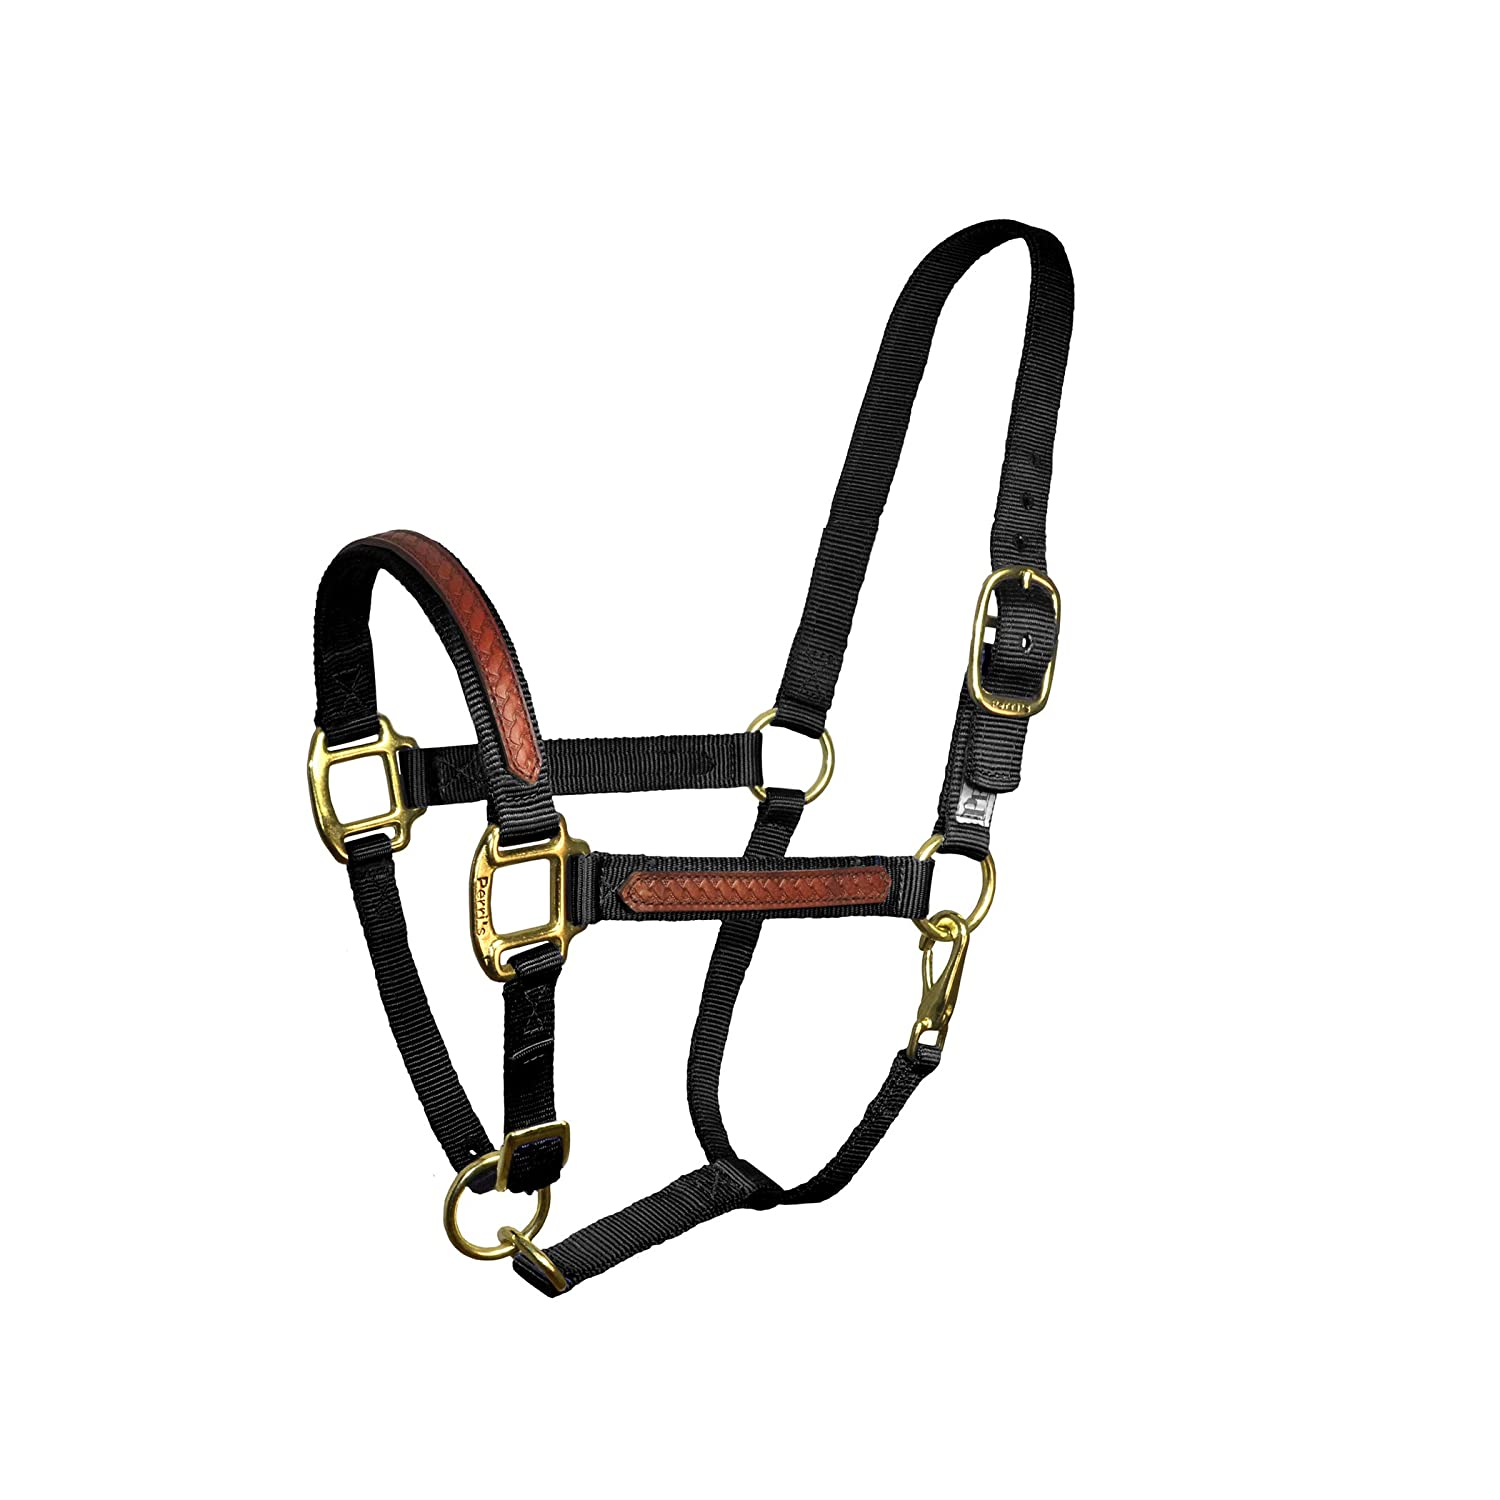 Perri's Cob Leather Overlay Halter With Safety Tab, Black Perri's Cob Leather Overlay Halter with Safety Tab